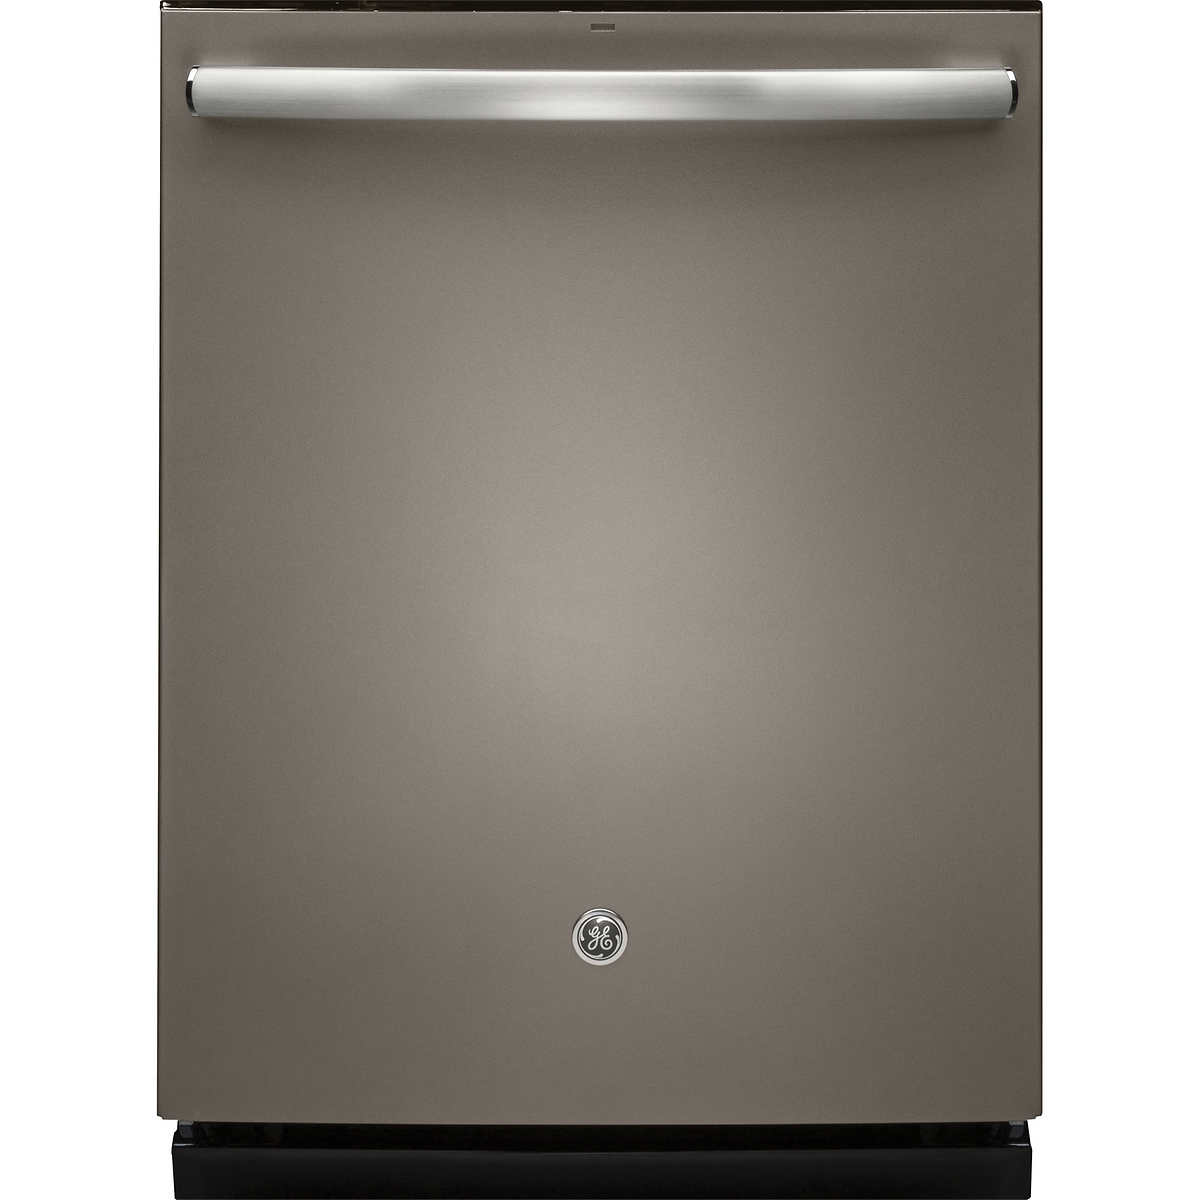 Ge Service Phone Number Ge Stainless Steel Interior Dishwasher With Hidden Controls In Slate